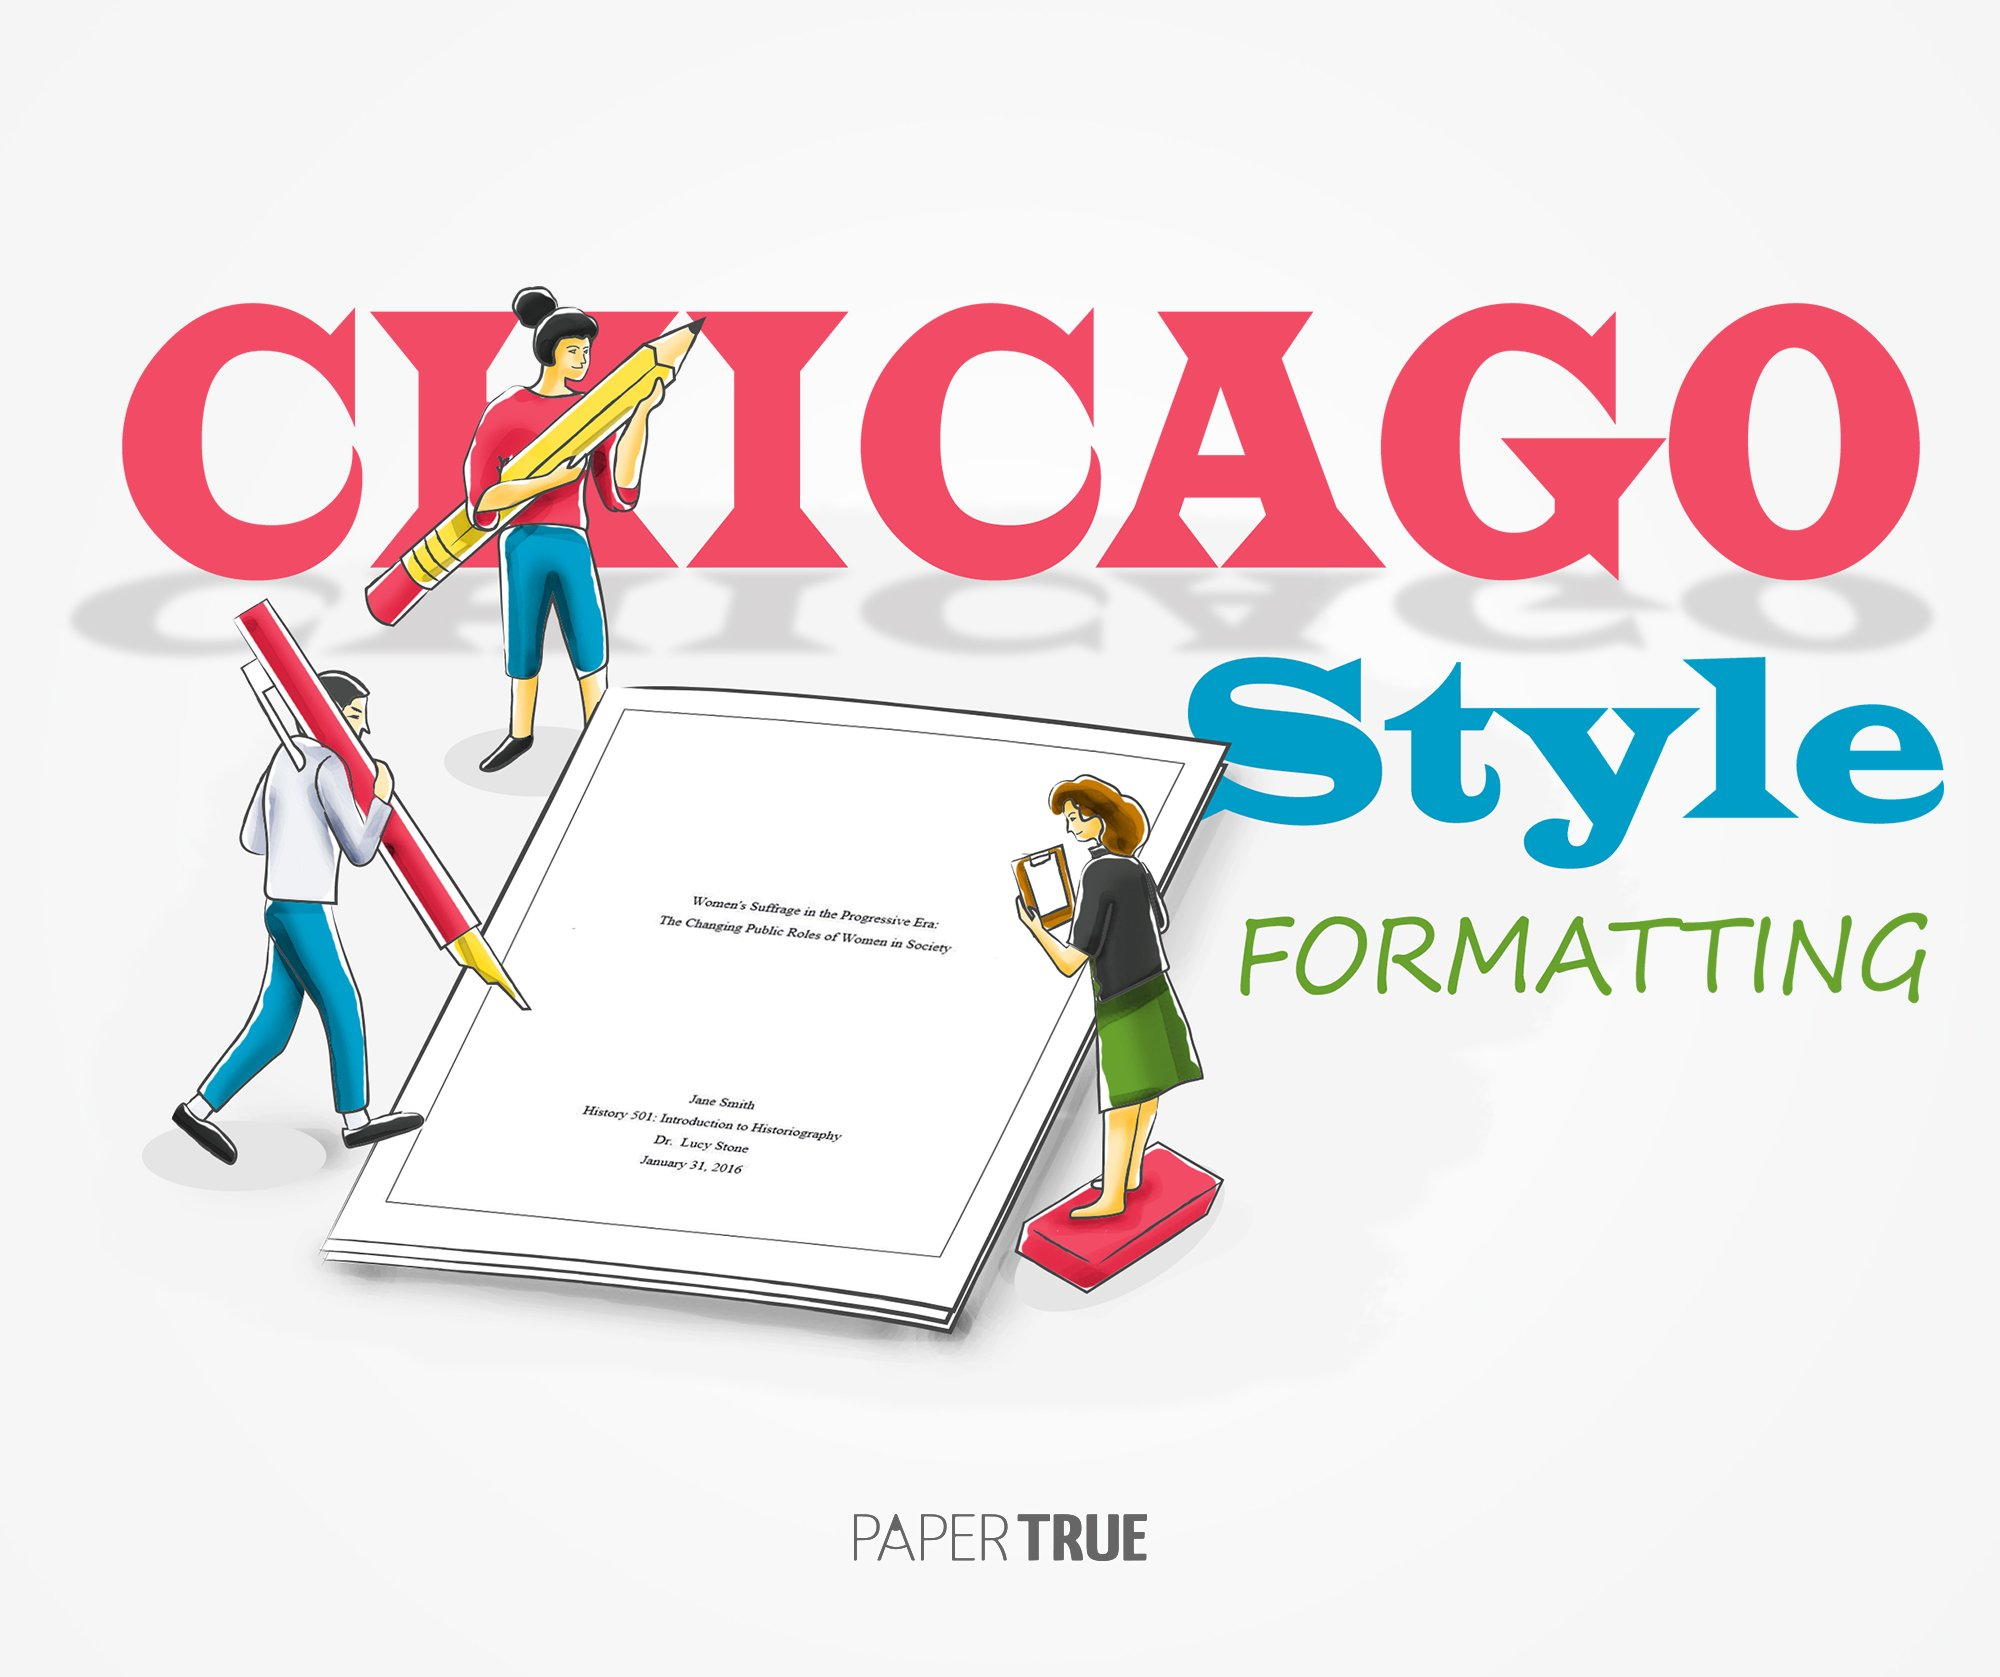 Chicago style for papers